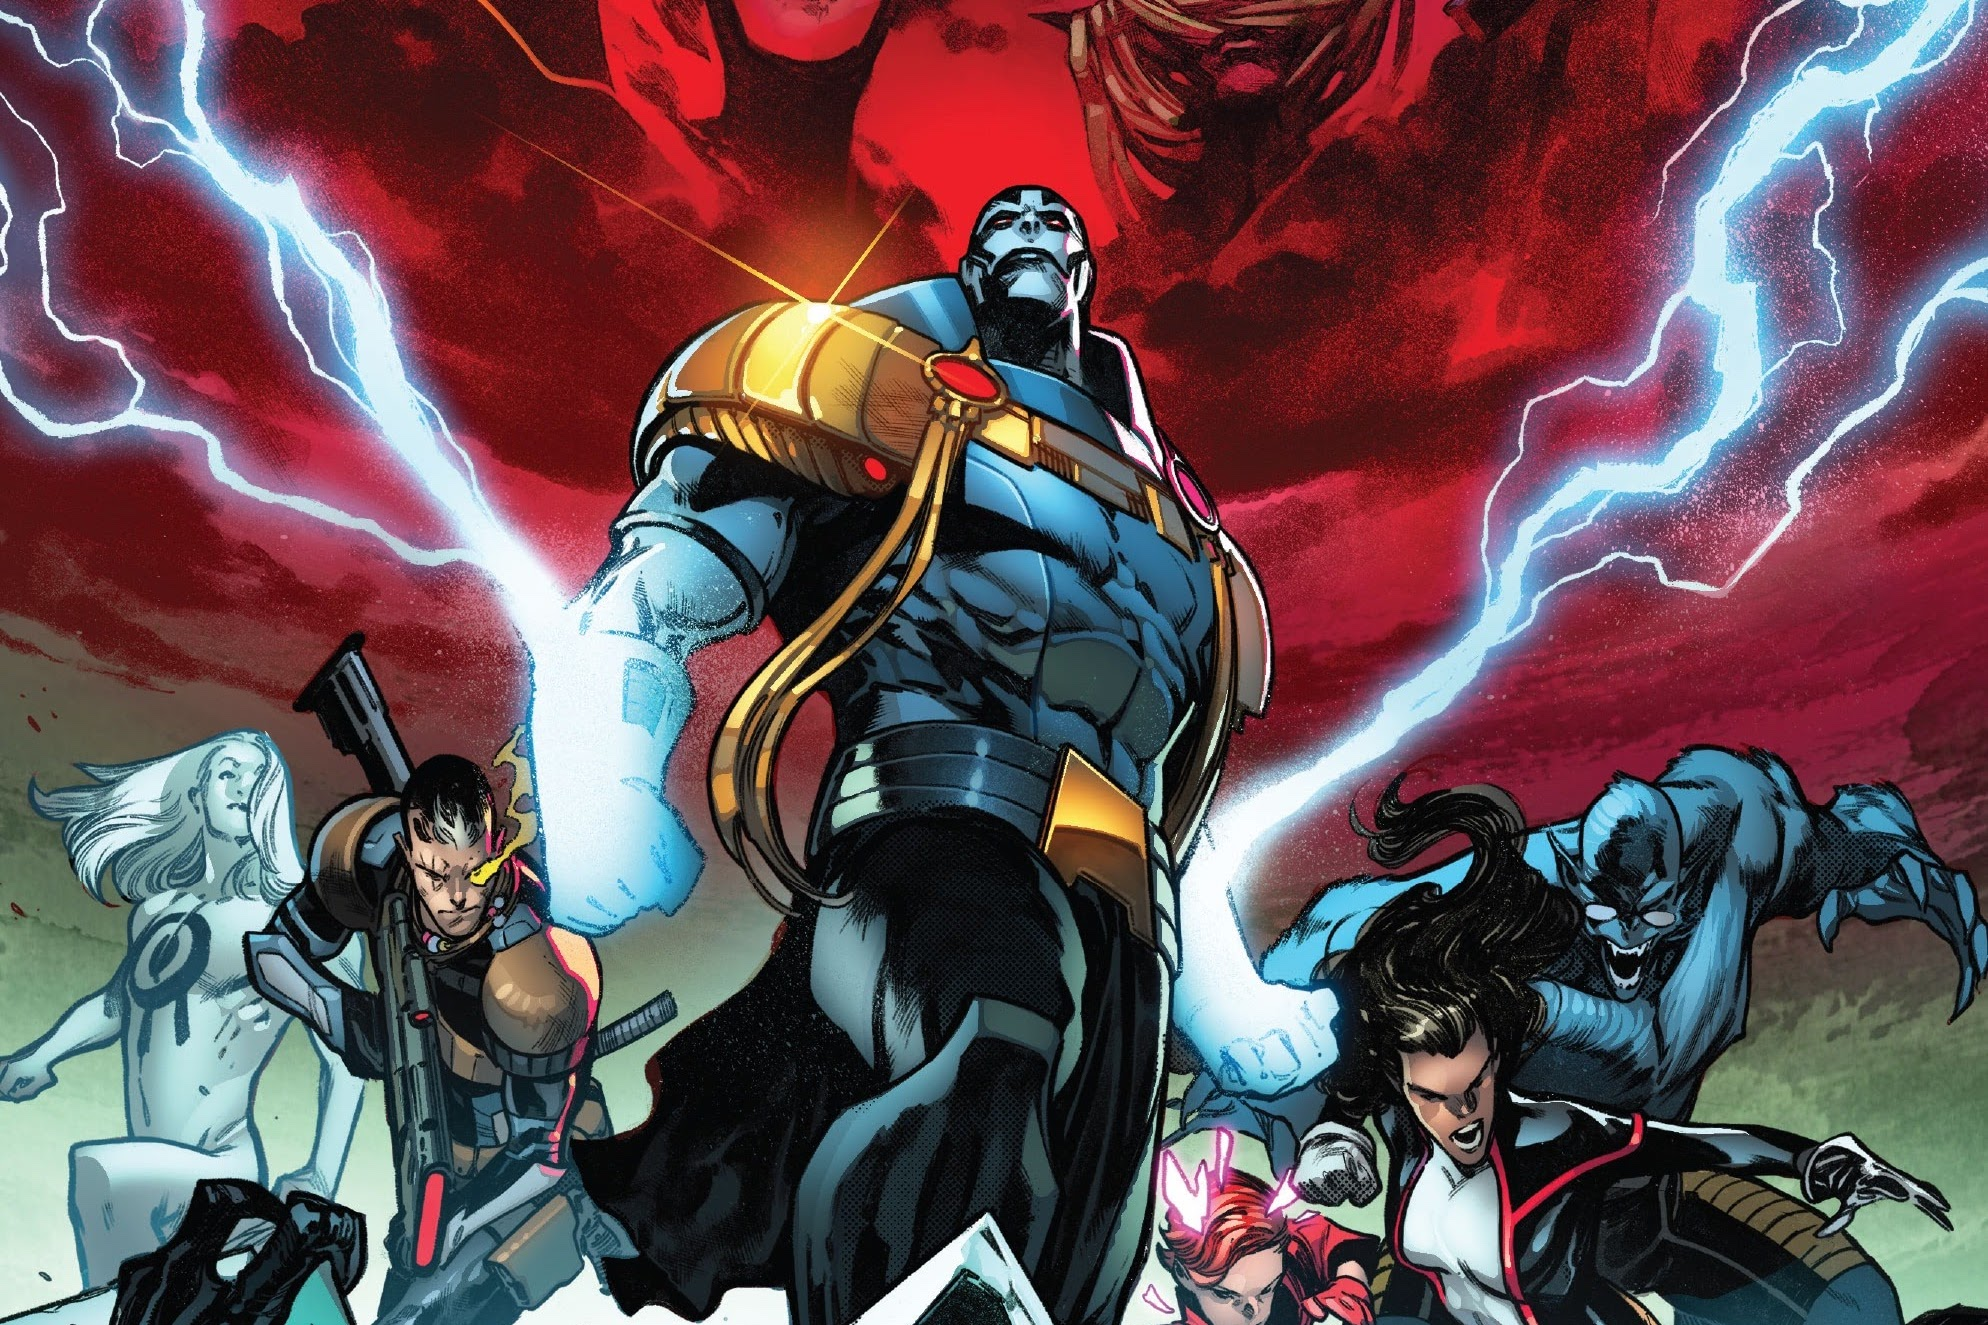 Summoner, Cable, Apocalypse, Rachel Grey, Monet St. Crox, and Beast face a horde of monsters, as the faces of the Four Horsemen loom in the clouds behind them, on the cover of X of Swords: Creation #1, Marvel Comics (2020).